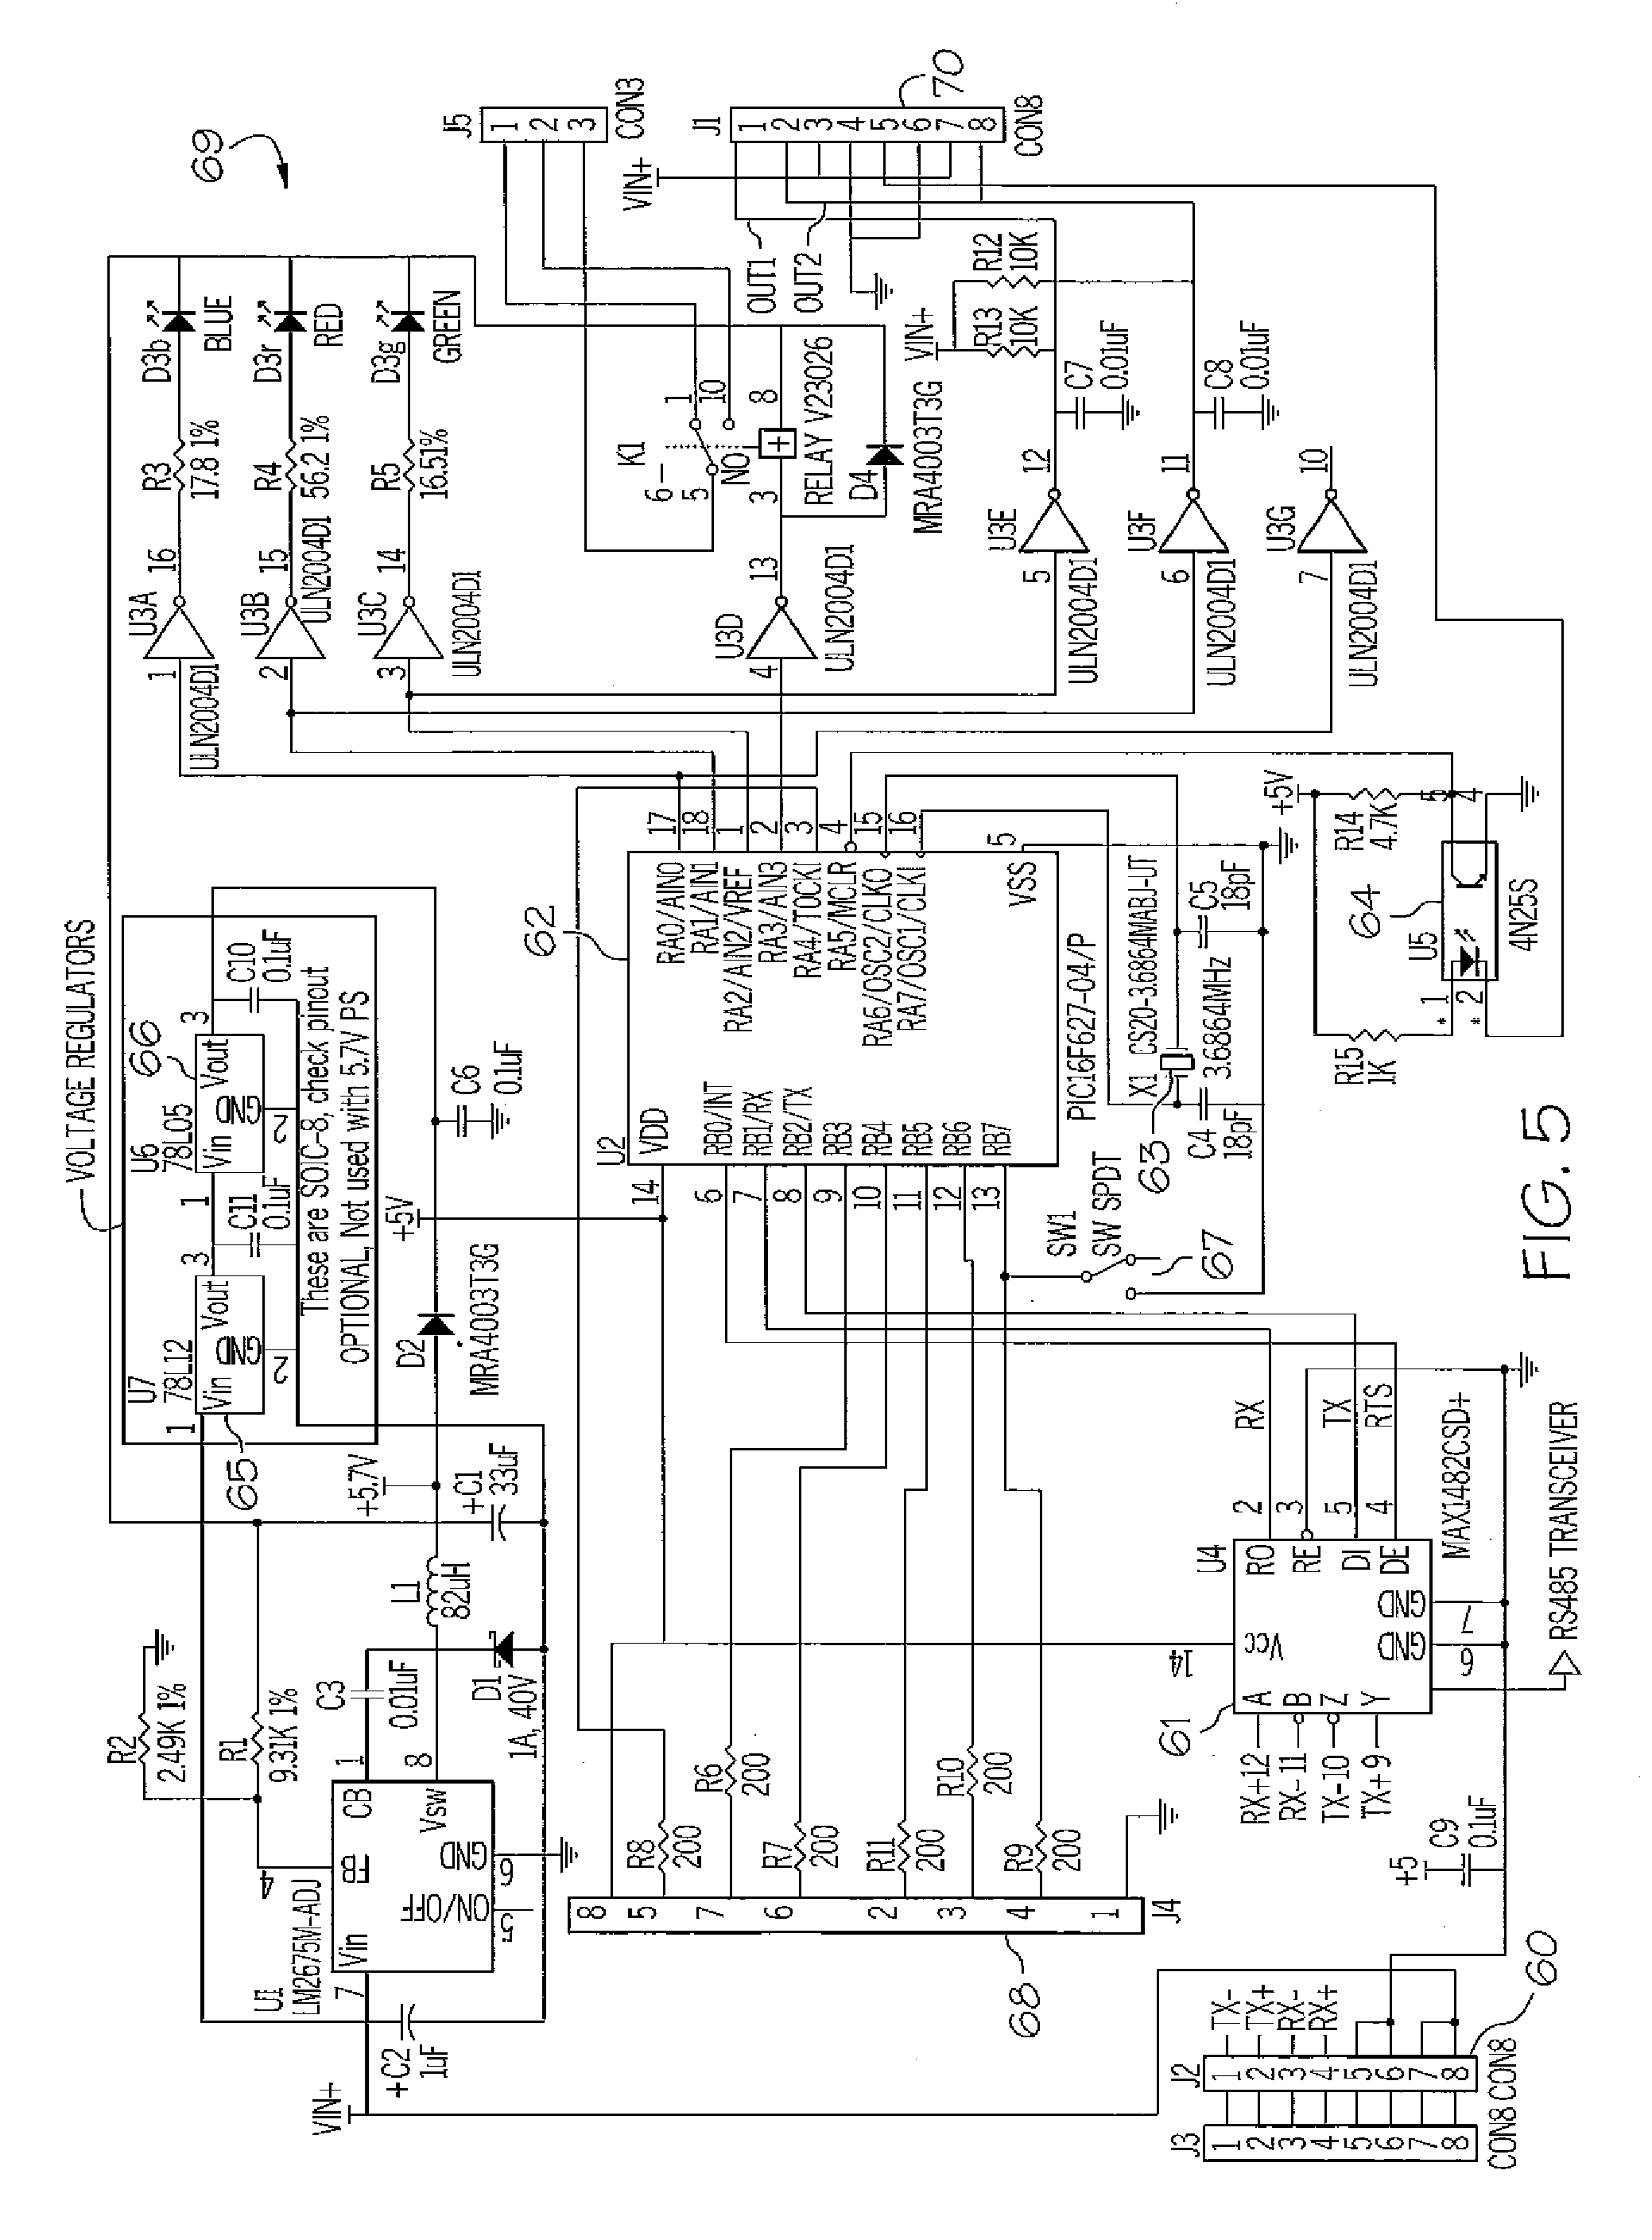 Patent US Emergency Call Panel For Hospital Communication - Wiring diagram nurse call system